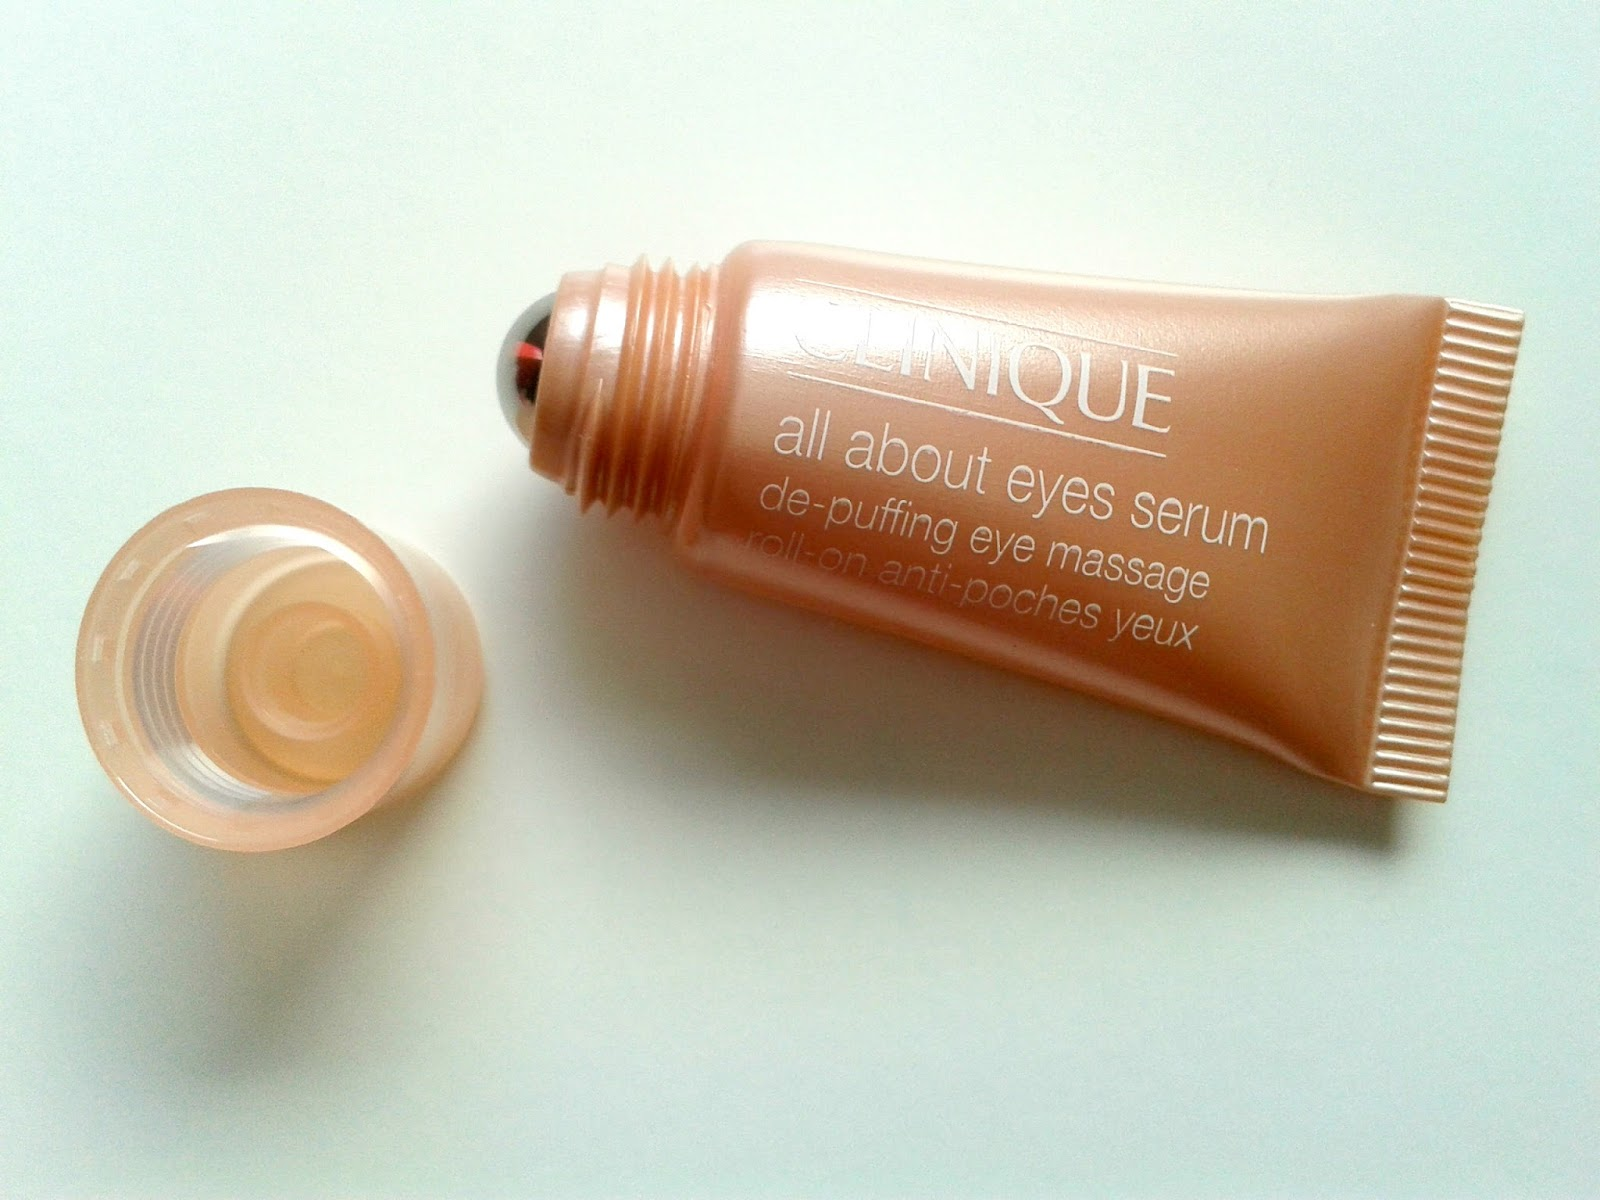 Clinique All About Eyes Serum De-Puffing Eye Massage Beauty Review